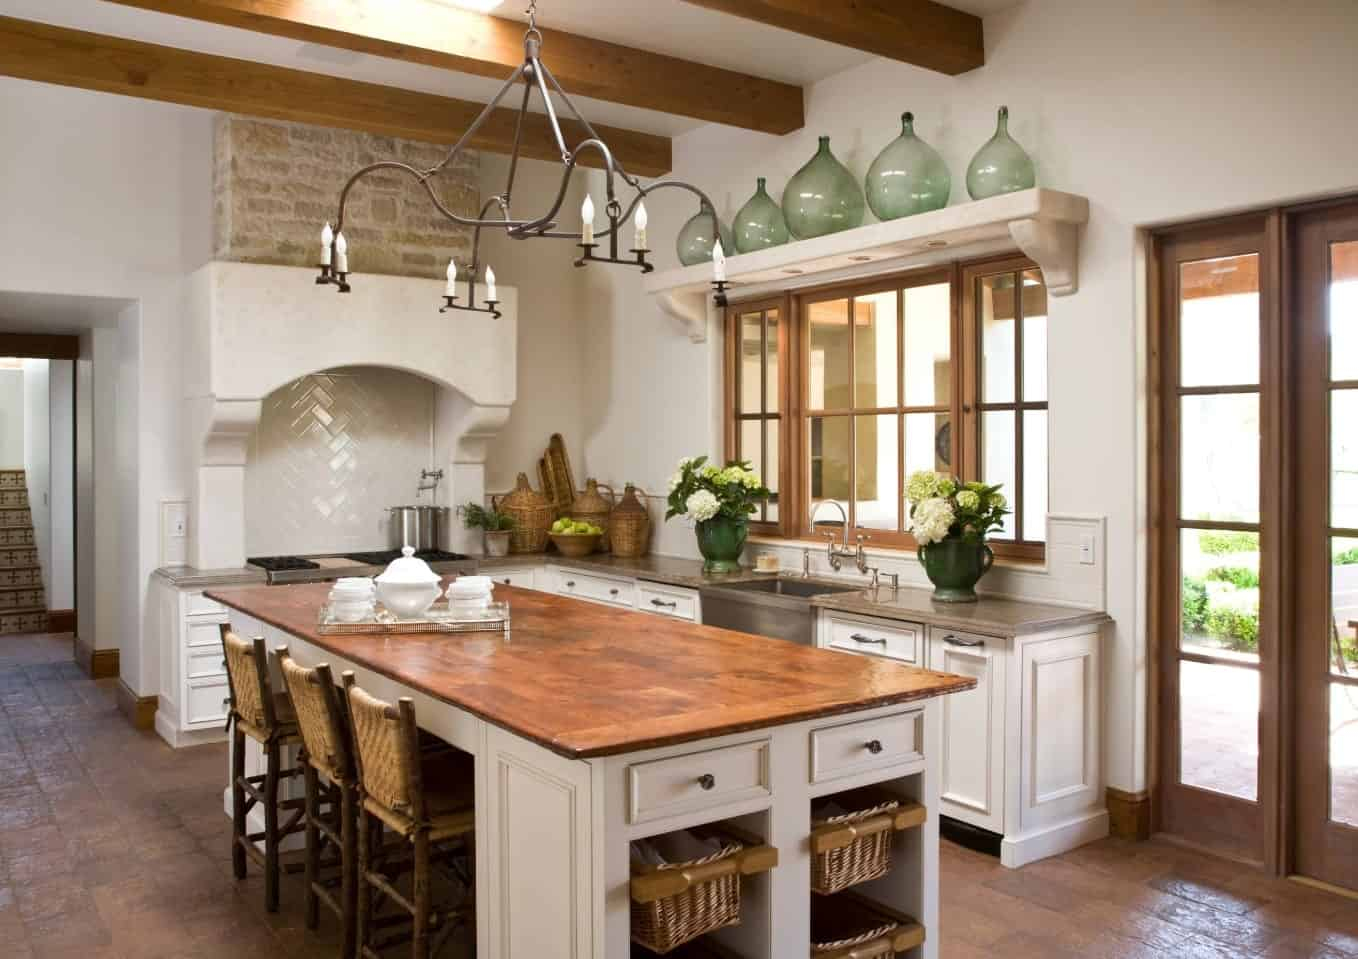 Wrought iron candle chandelier hung from an exposed wood beam ceiling over a breakfast island in this white kitchen. It feels airy and bright through the help of glass windows and doors and a skylight.